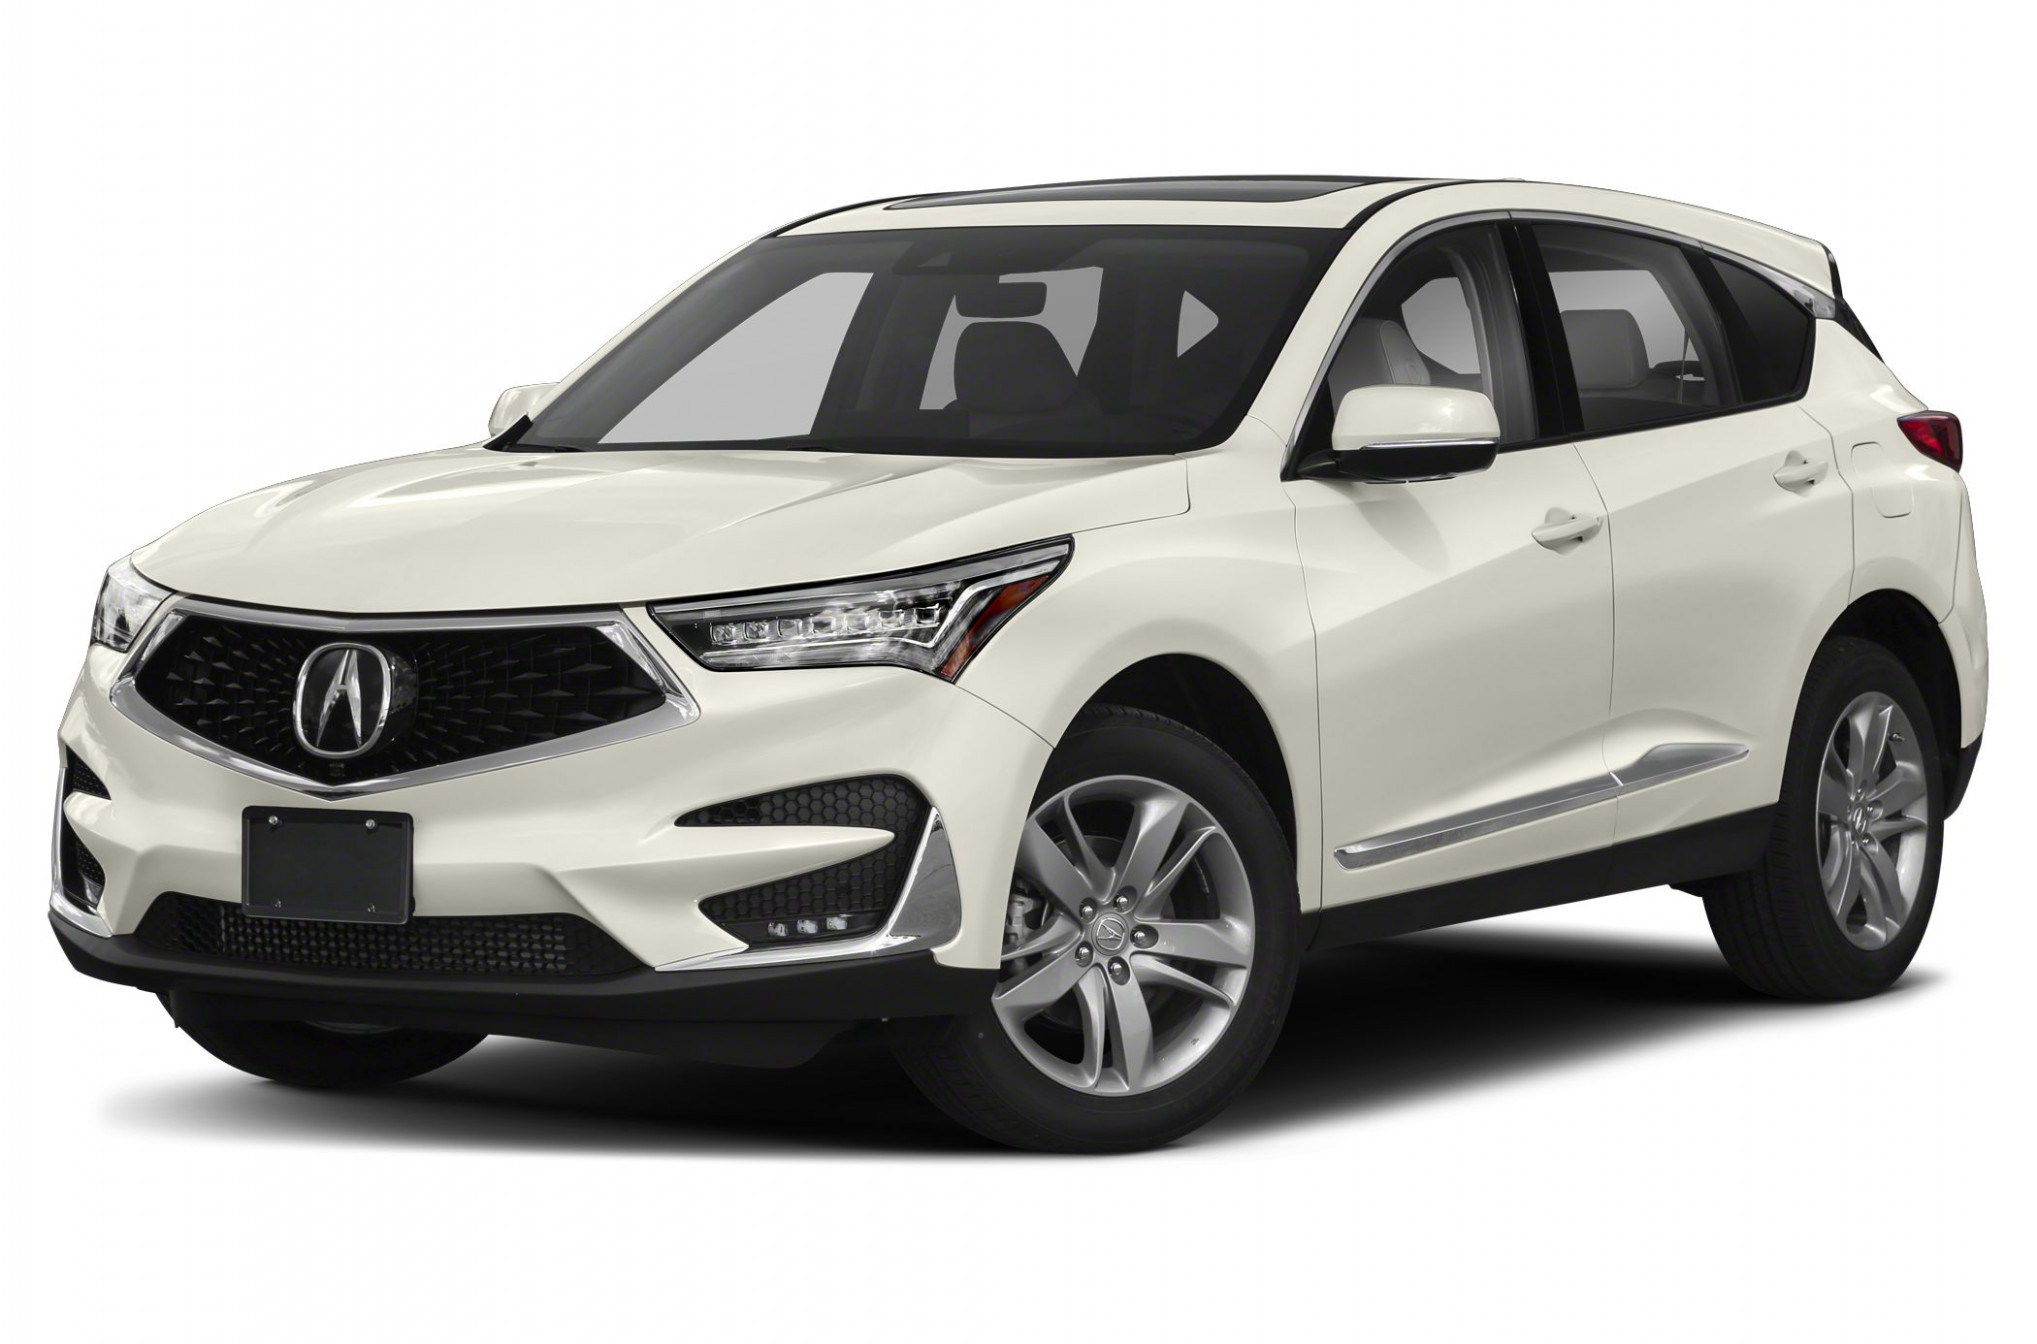 6 Acura RDX Advance Package 6dr SH-AWD Specs and Prices - acura rdx 2020 specs